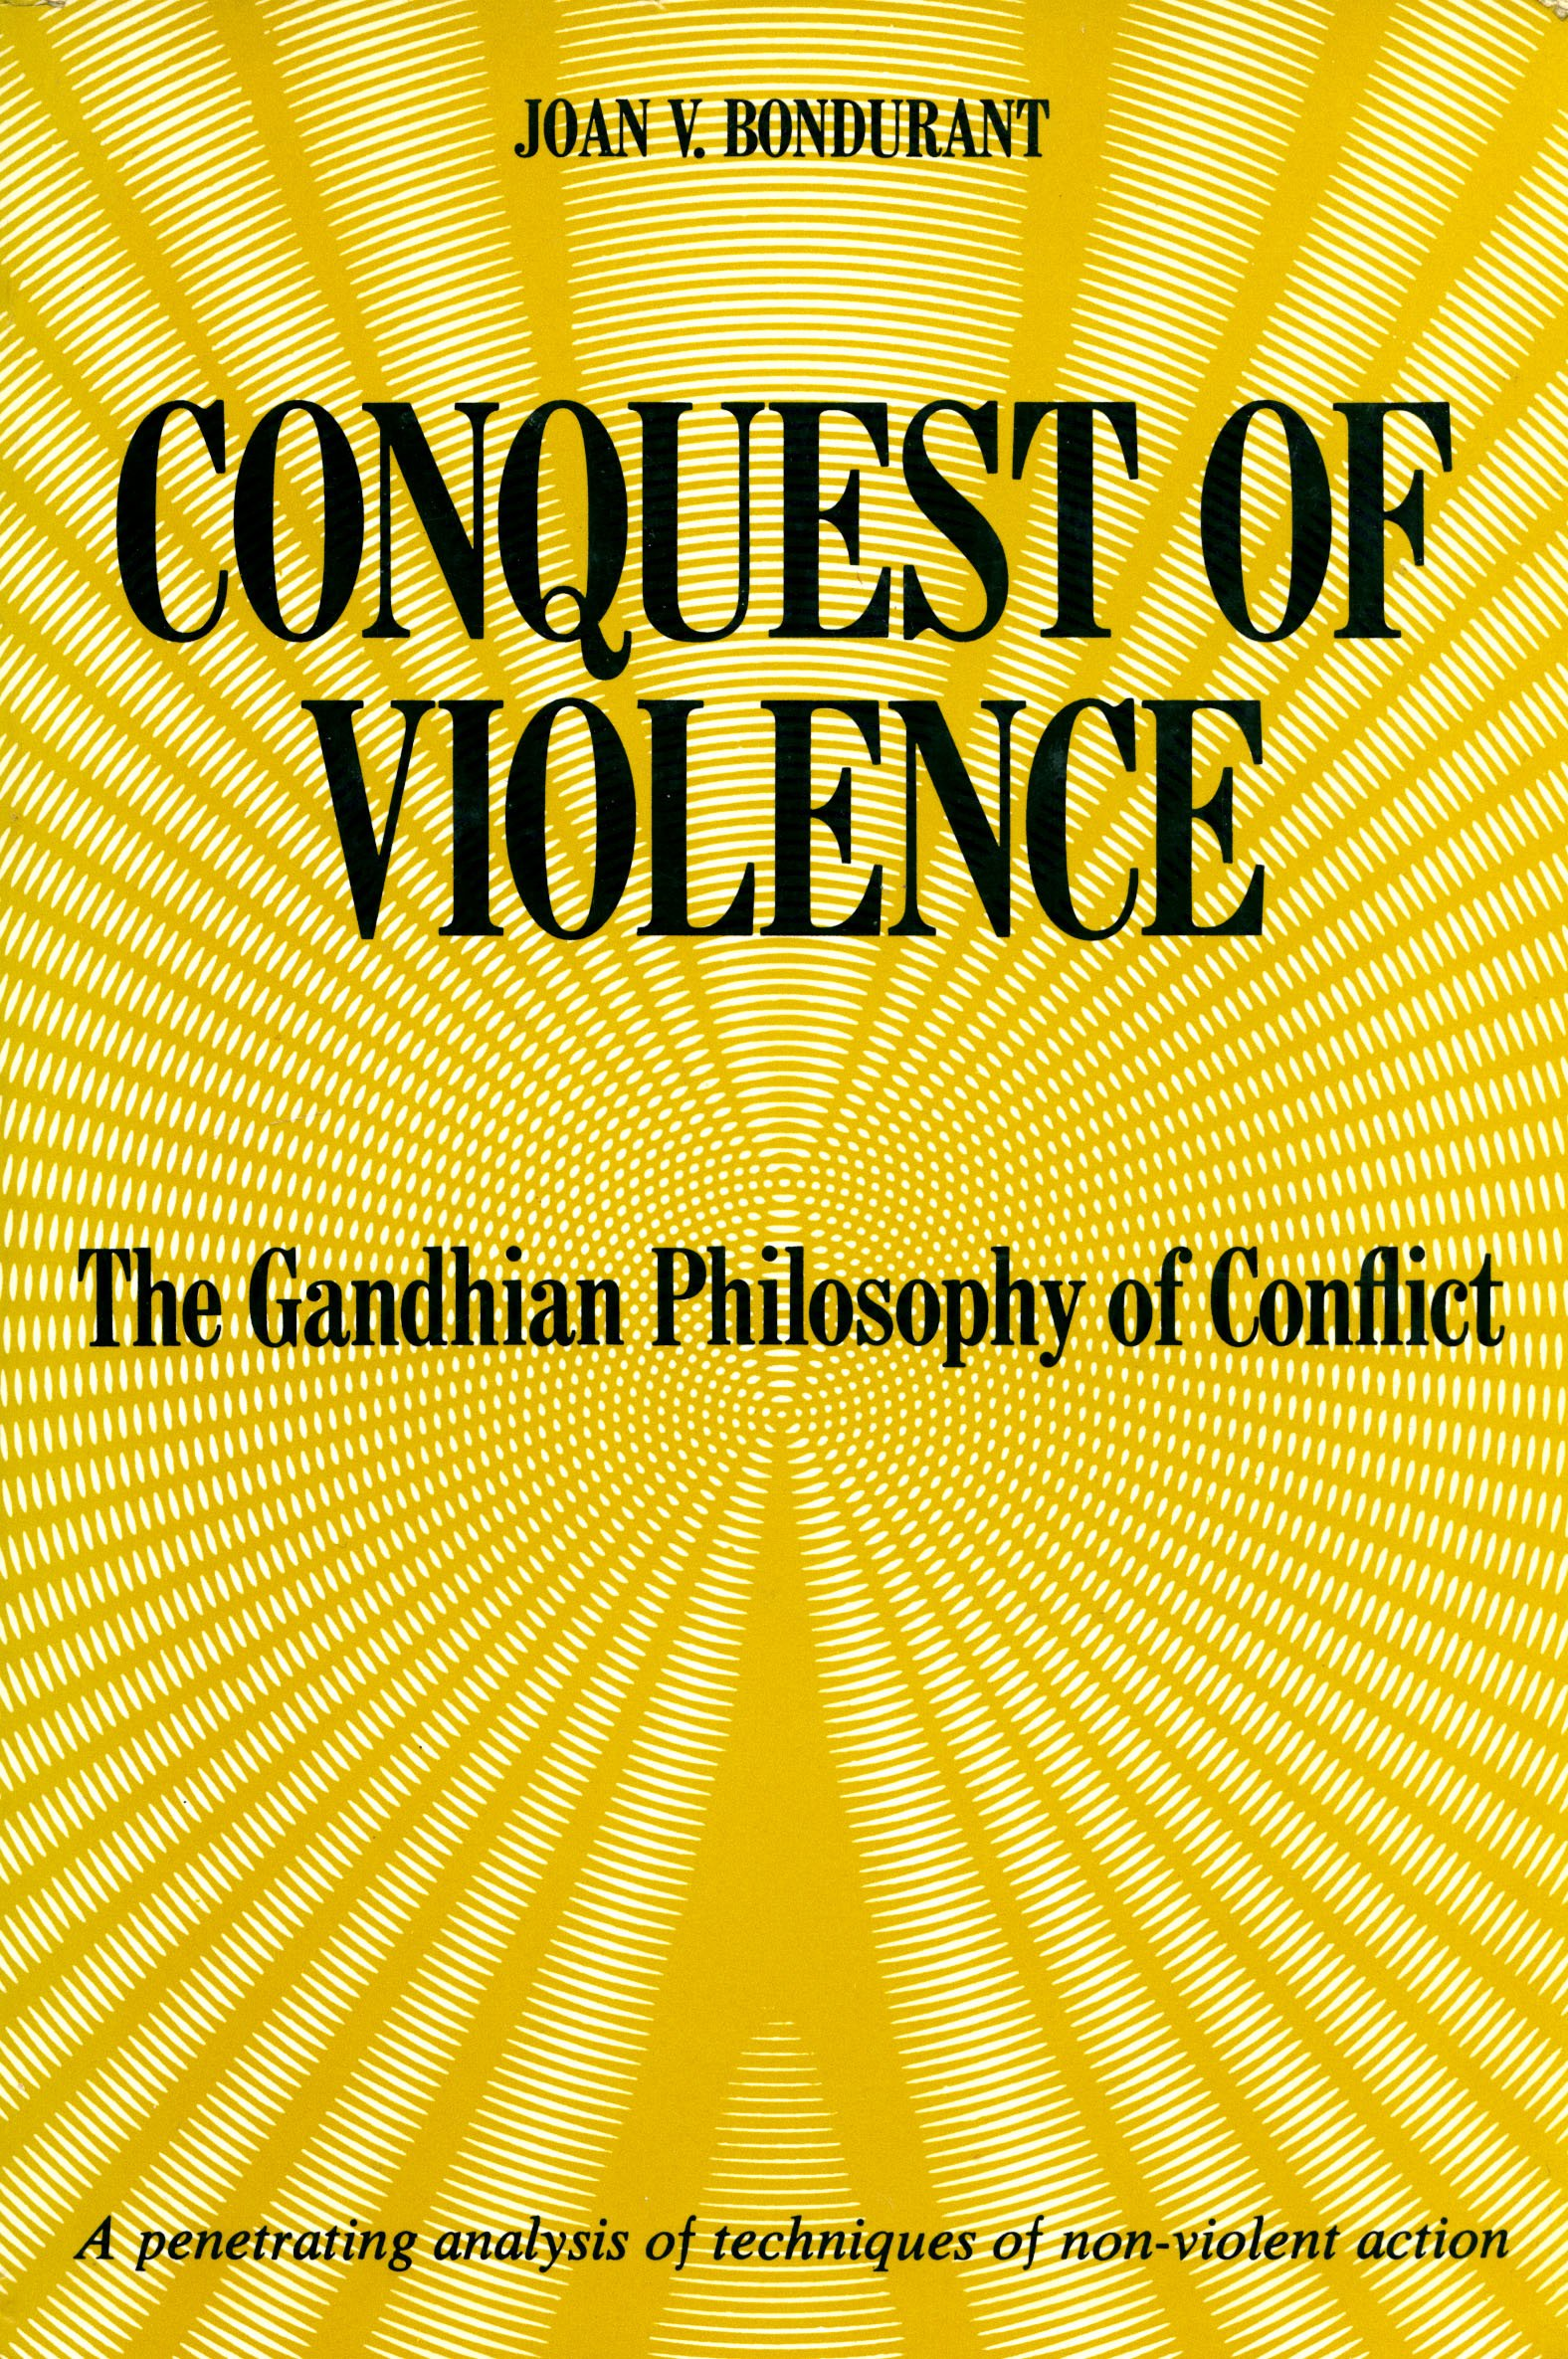 Conquest of Violence: the Gandhian Philosophy of Conflict, Joan V. Bondurant